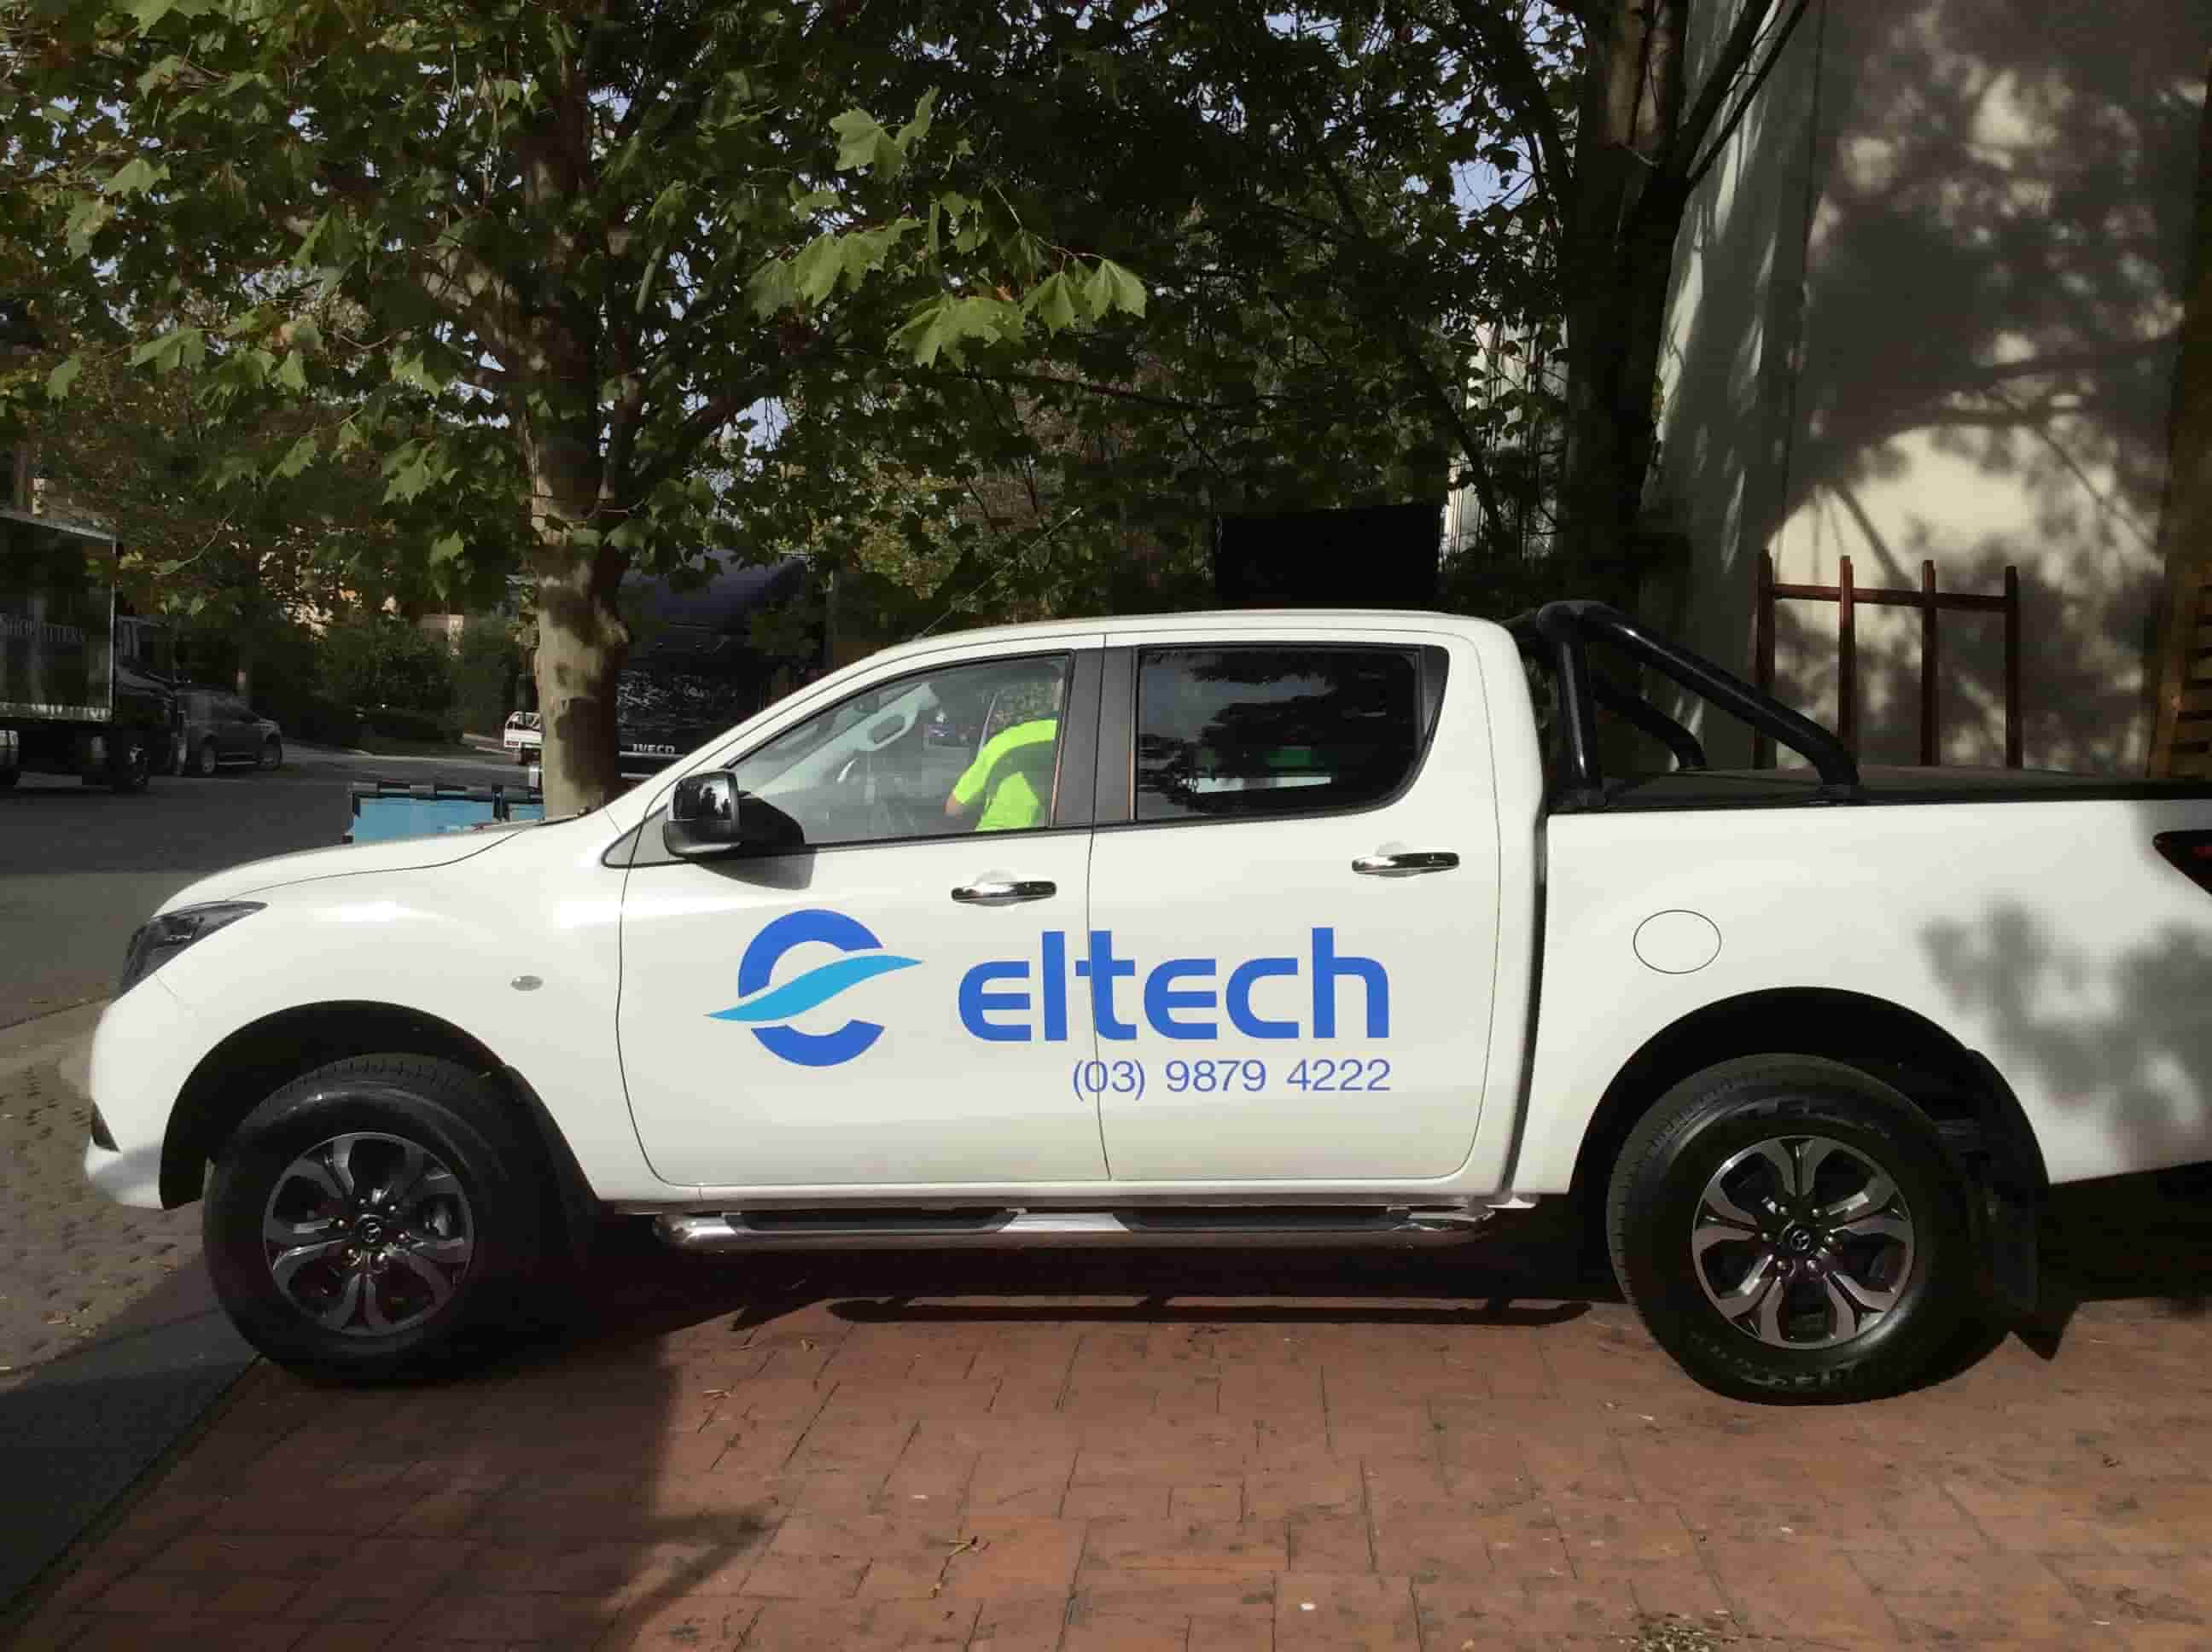 Vehicle signage eltech